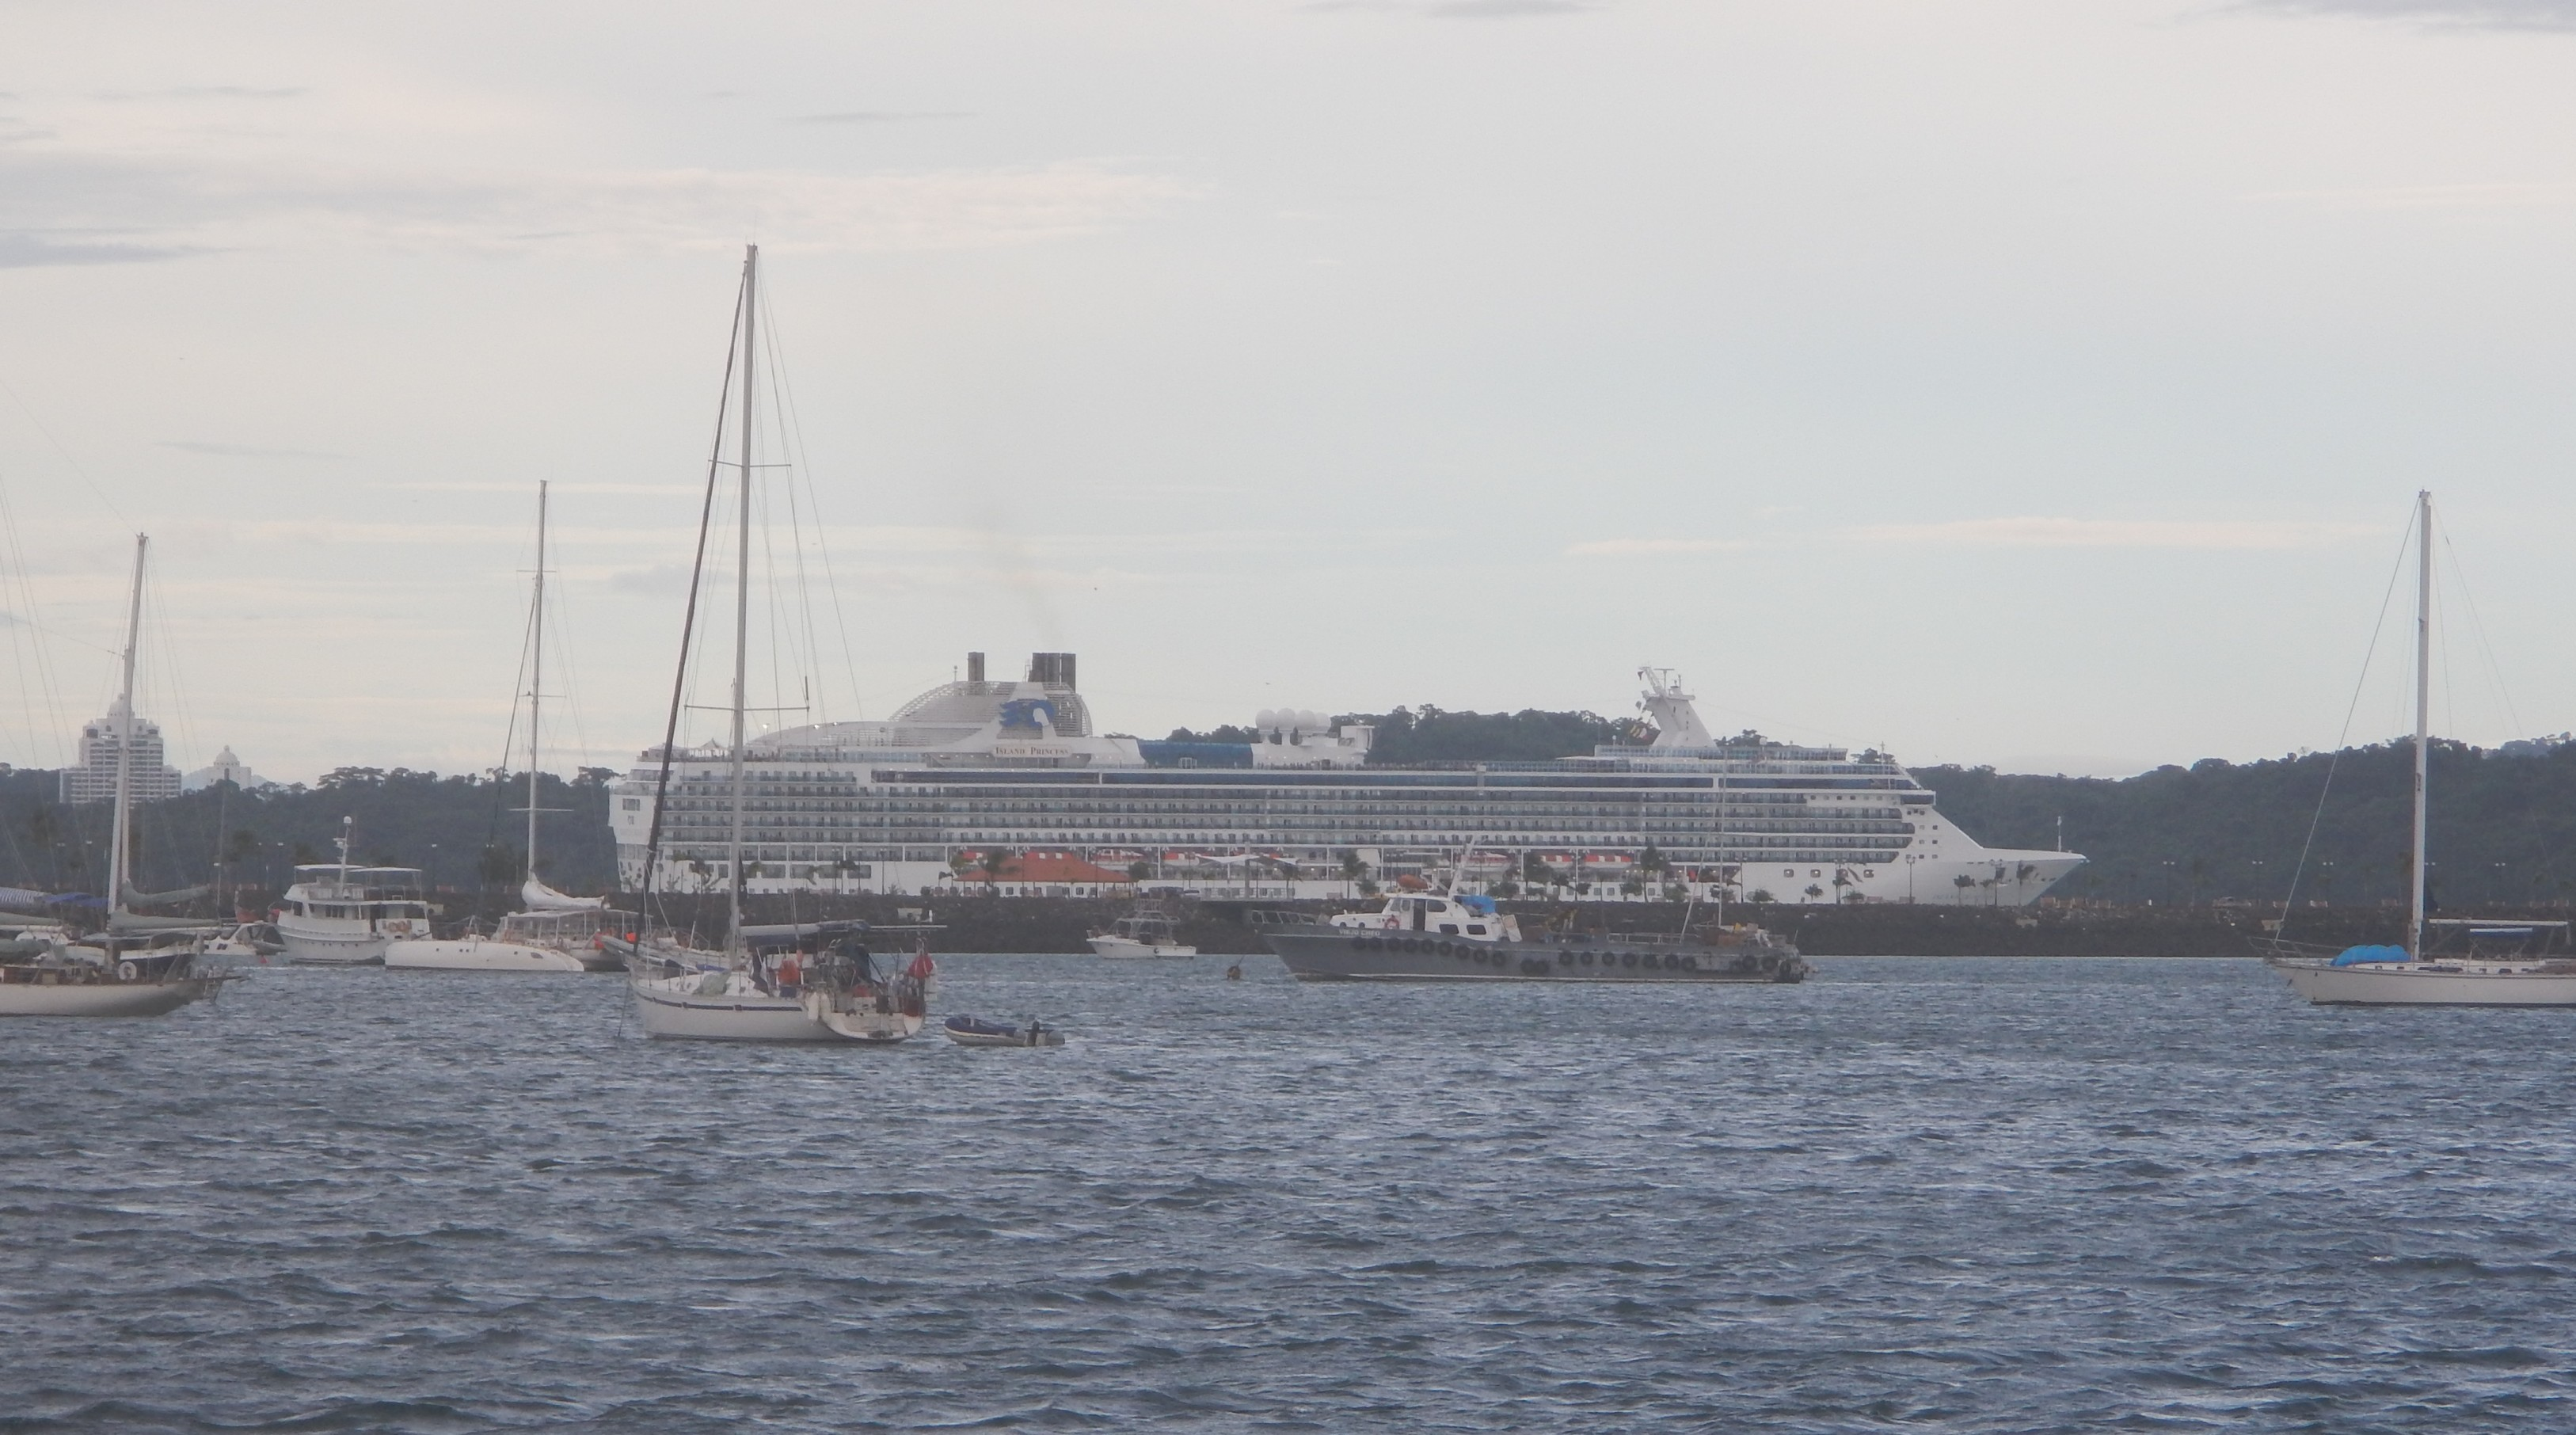 Cruise Ship Going By